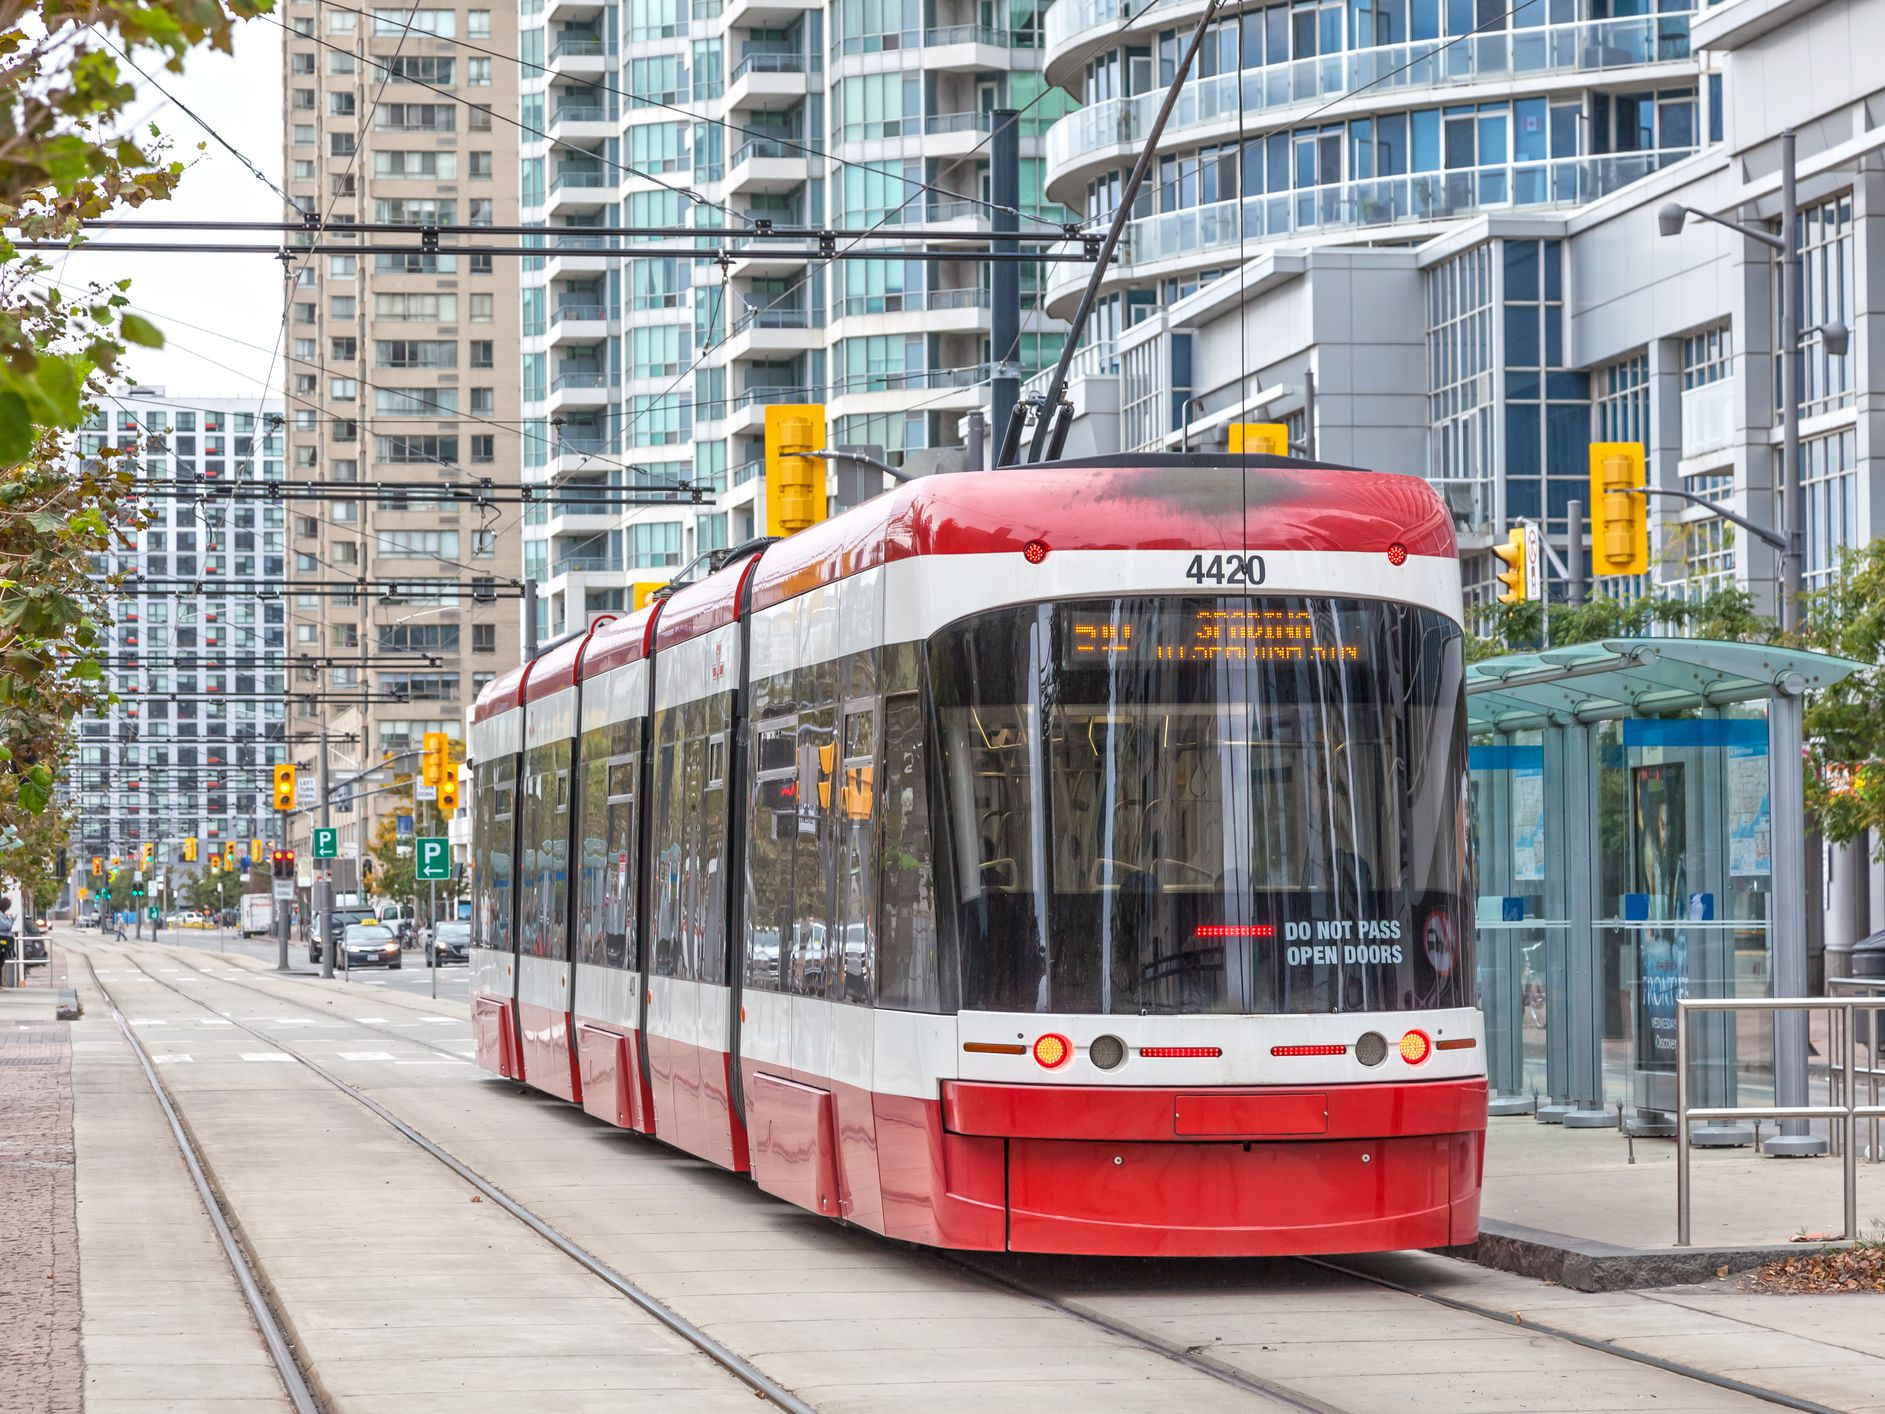 How to Use the TTC - Toronto's Public Transportation